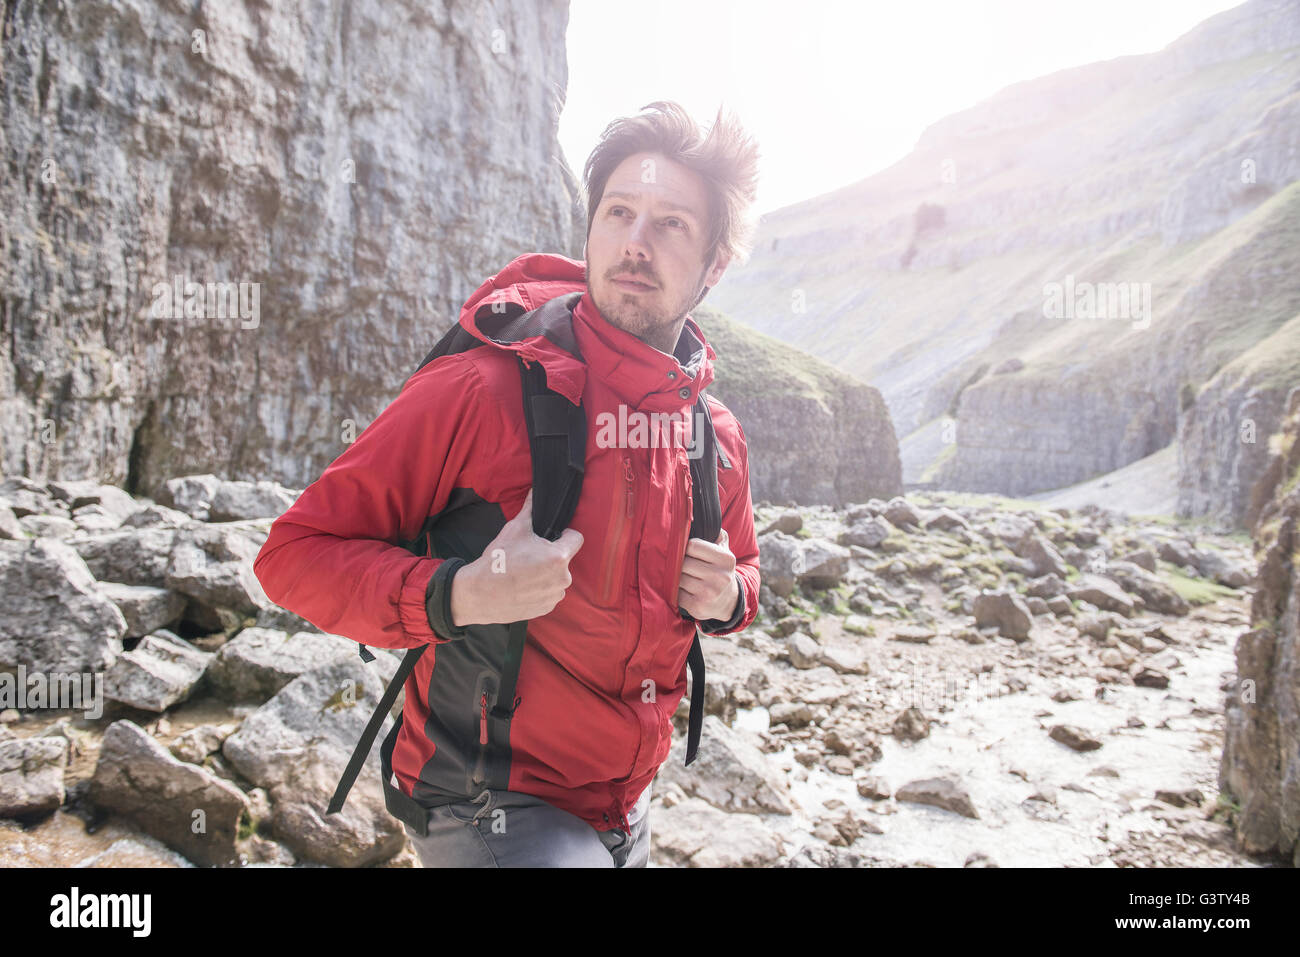 A climber with a rucksack standing in rugged terrain. - Stock Image